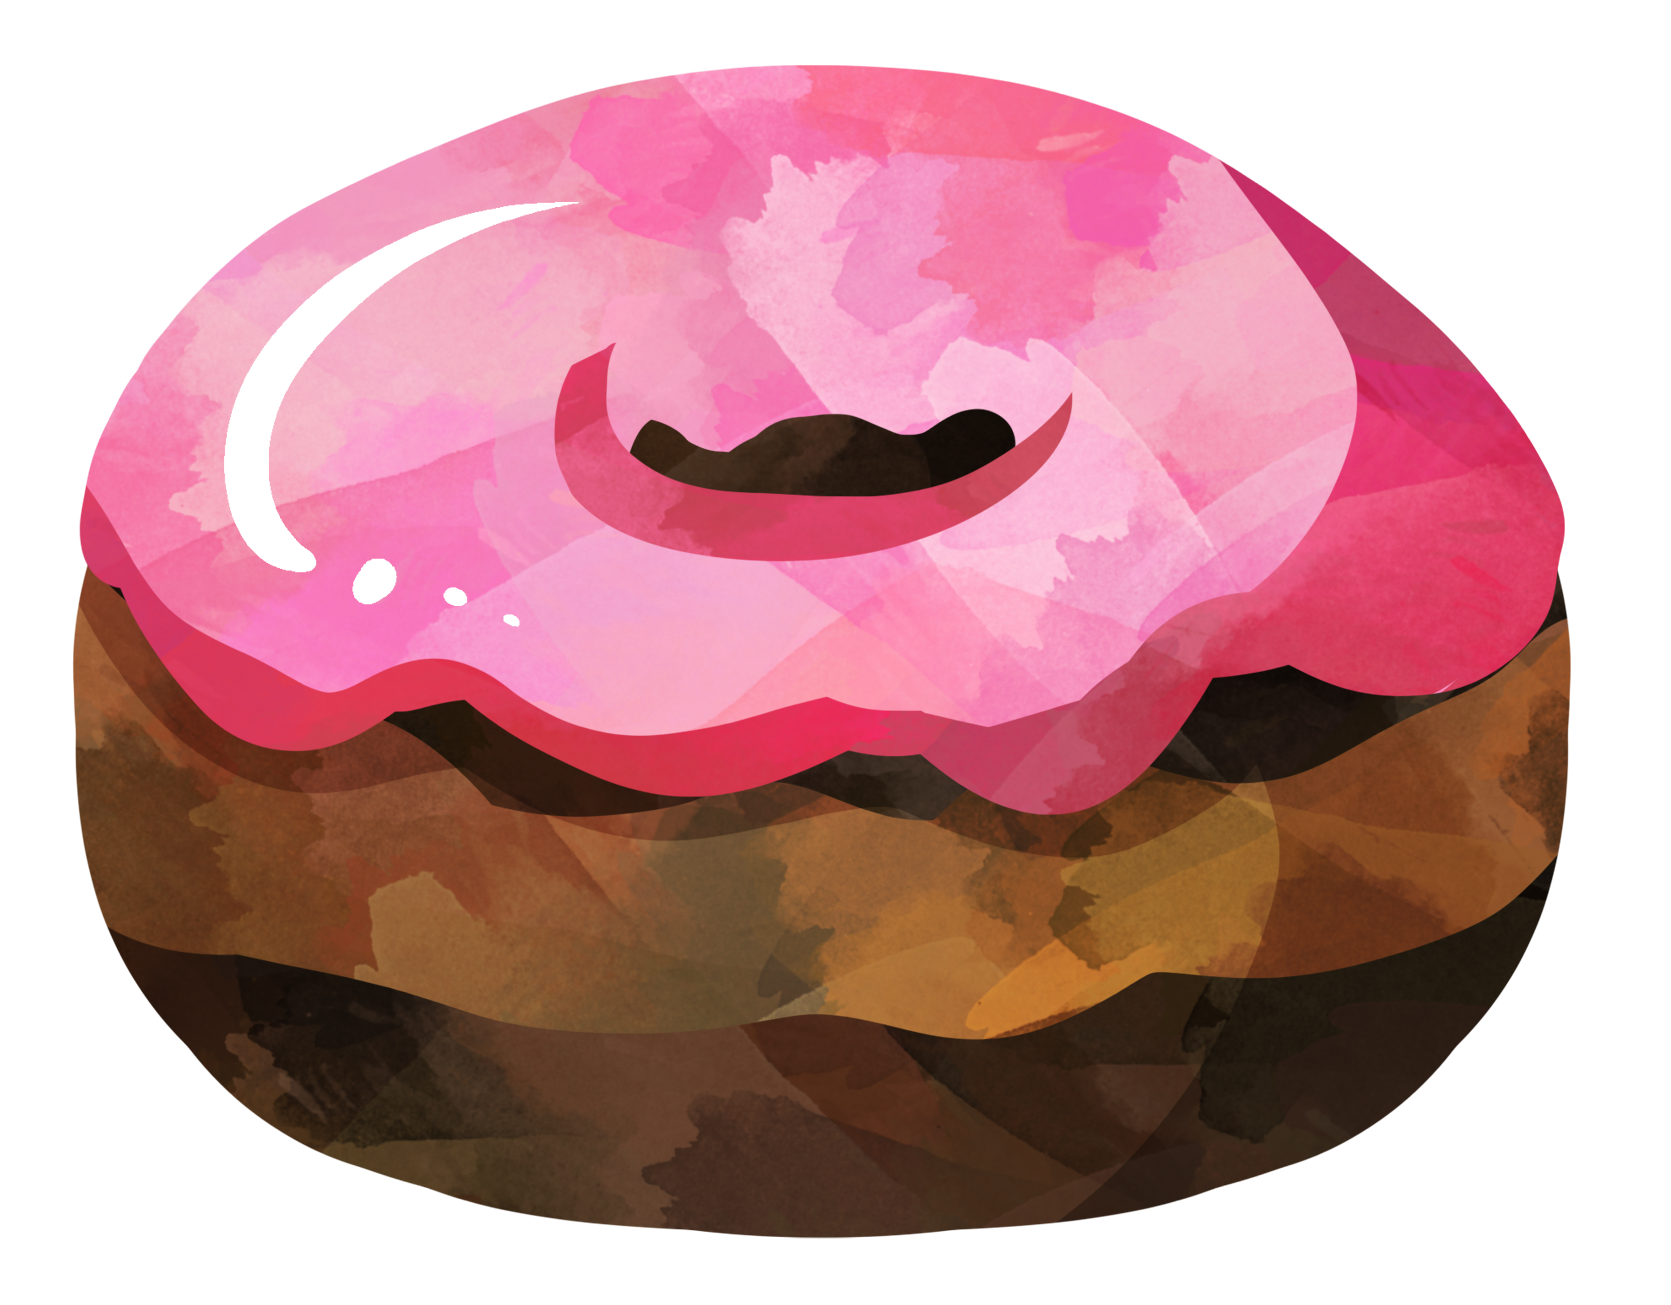 Pink donut. Watercolor chocolate with